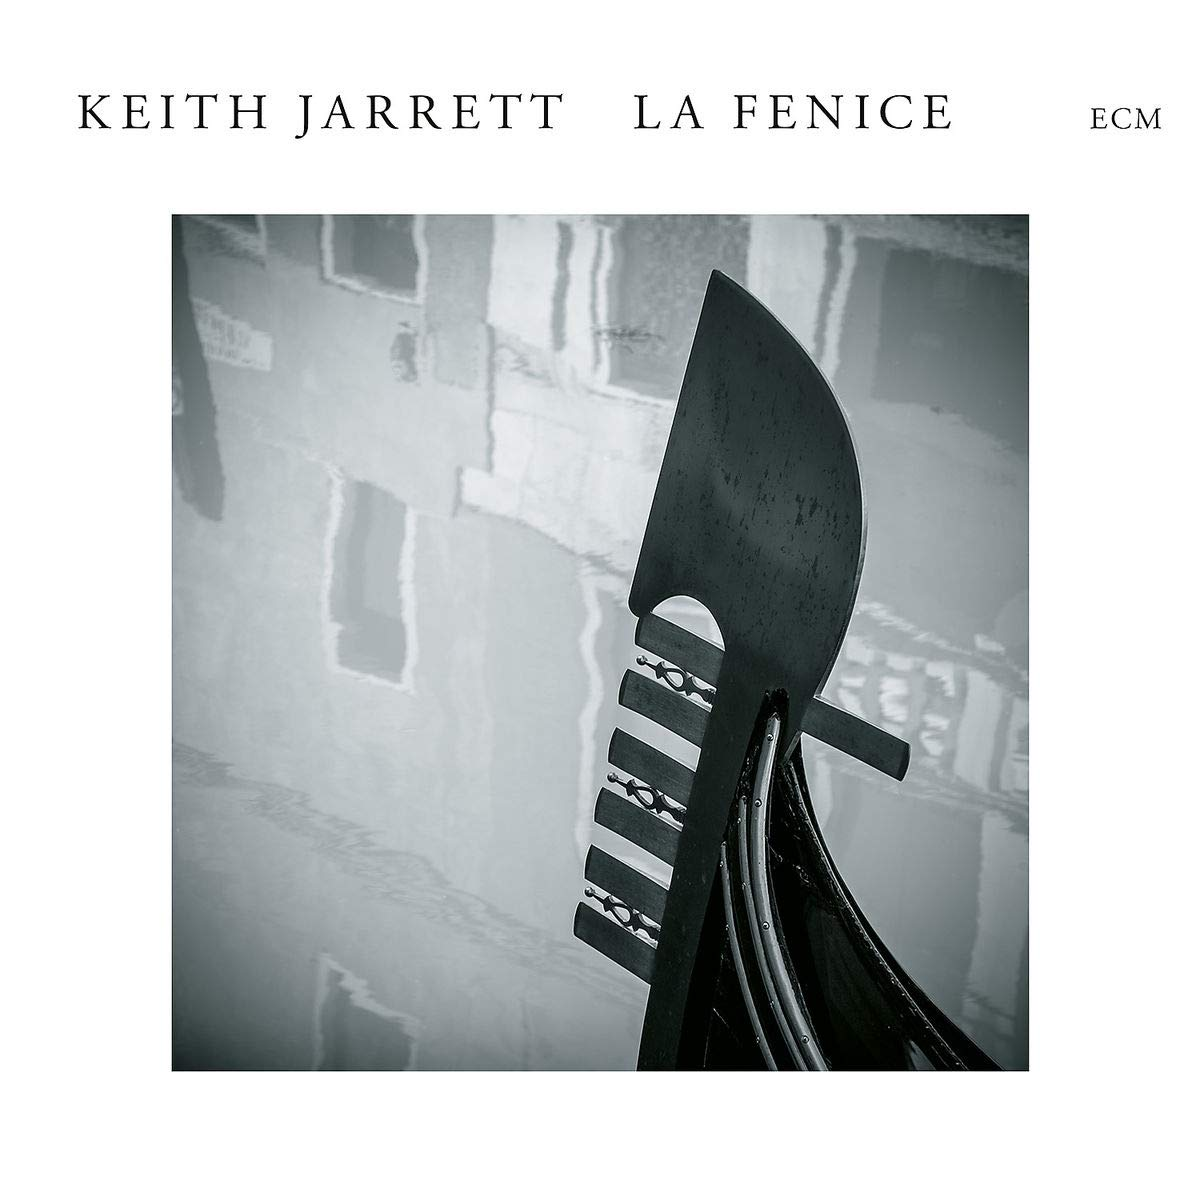 Keith Jarrett - La Fenice [2 CD] - Amazon.com Music